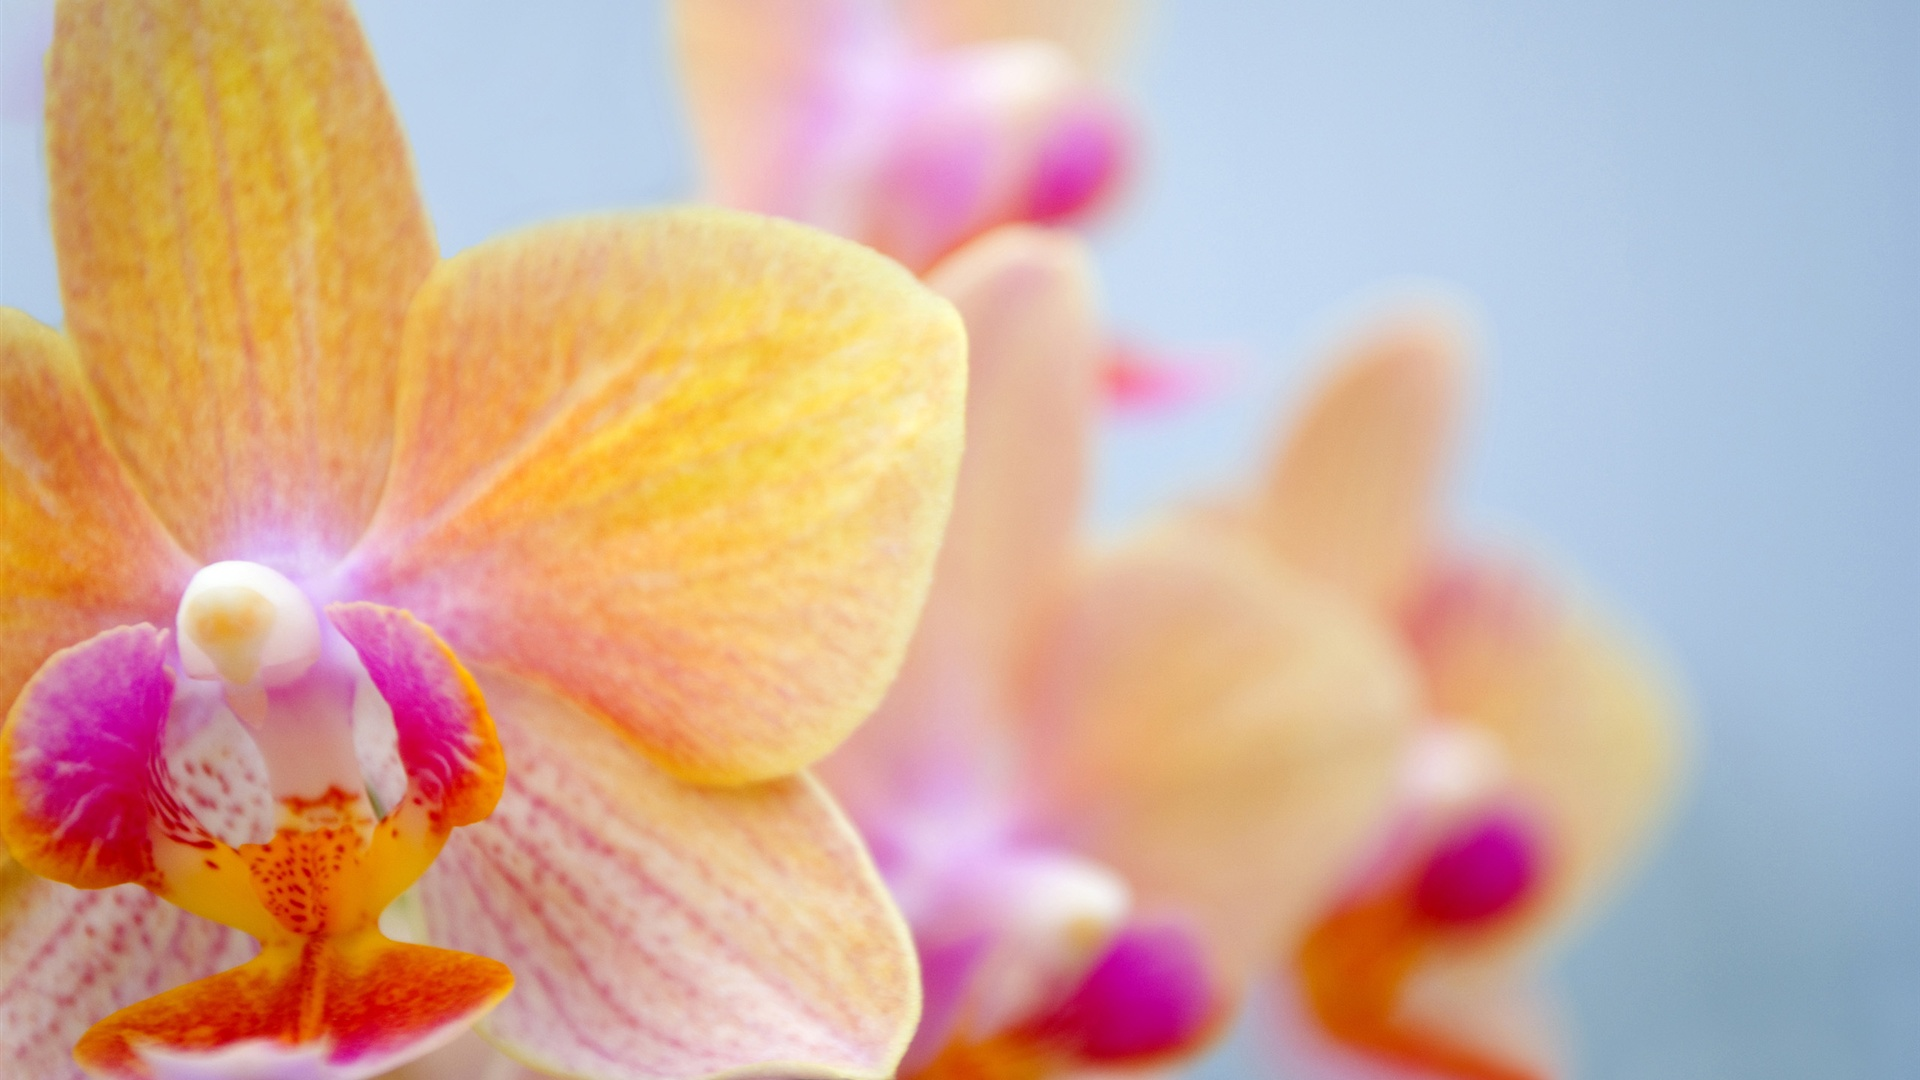 1080 x 1920 orchid wallpaper: Orange Schmetterling Orchidee 2560x1600 HD